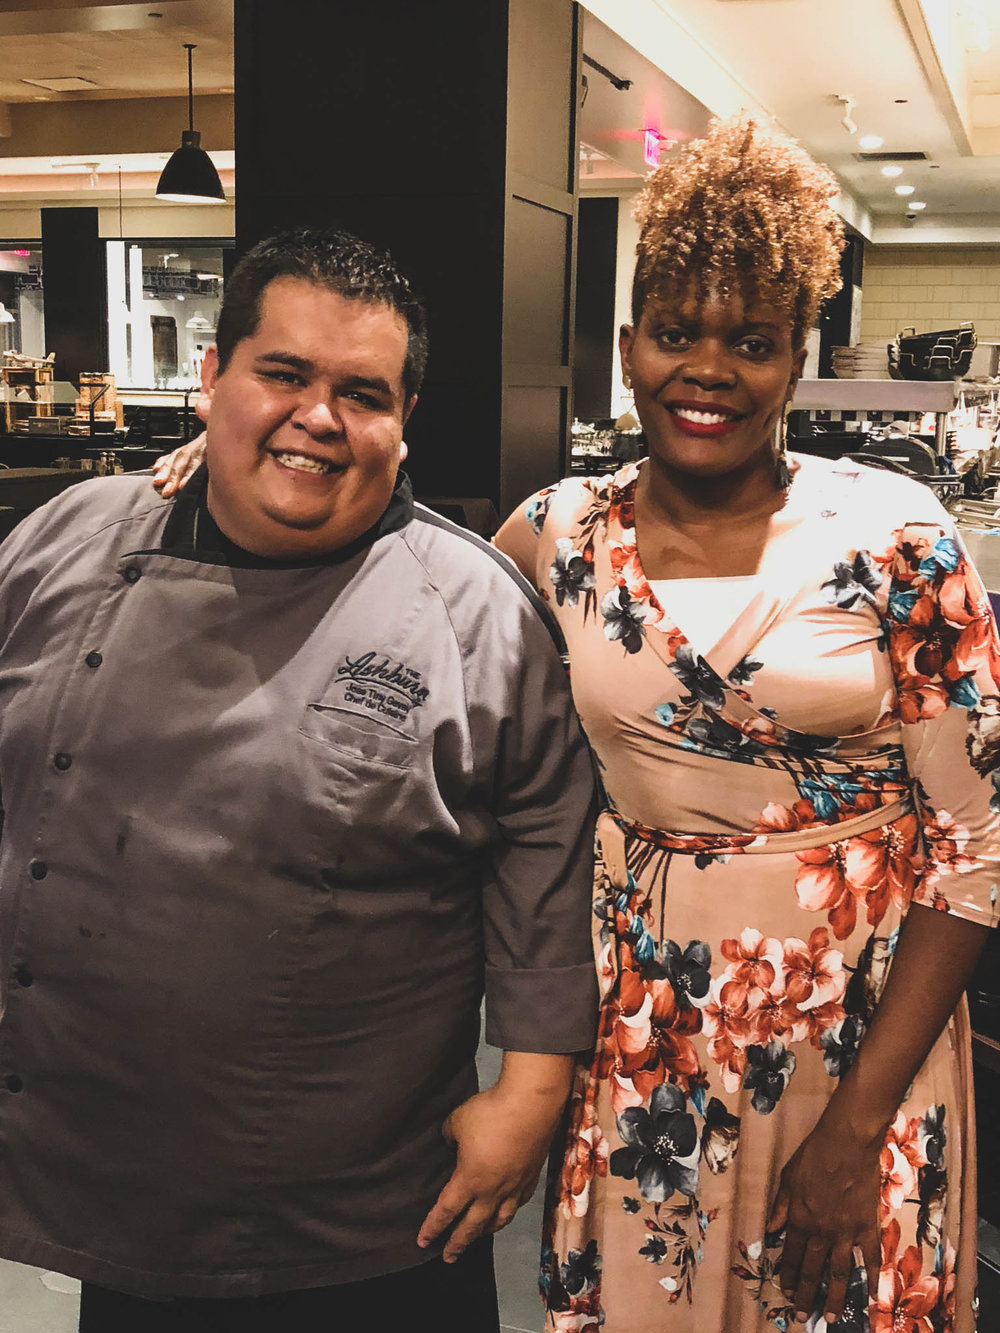 Chef Jose Garay says being a chef is in his blood